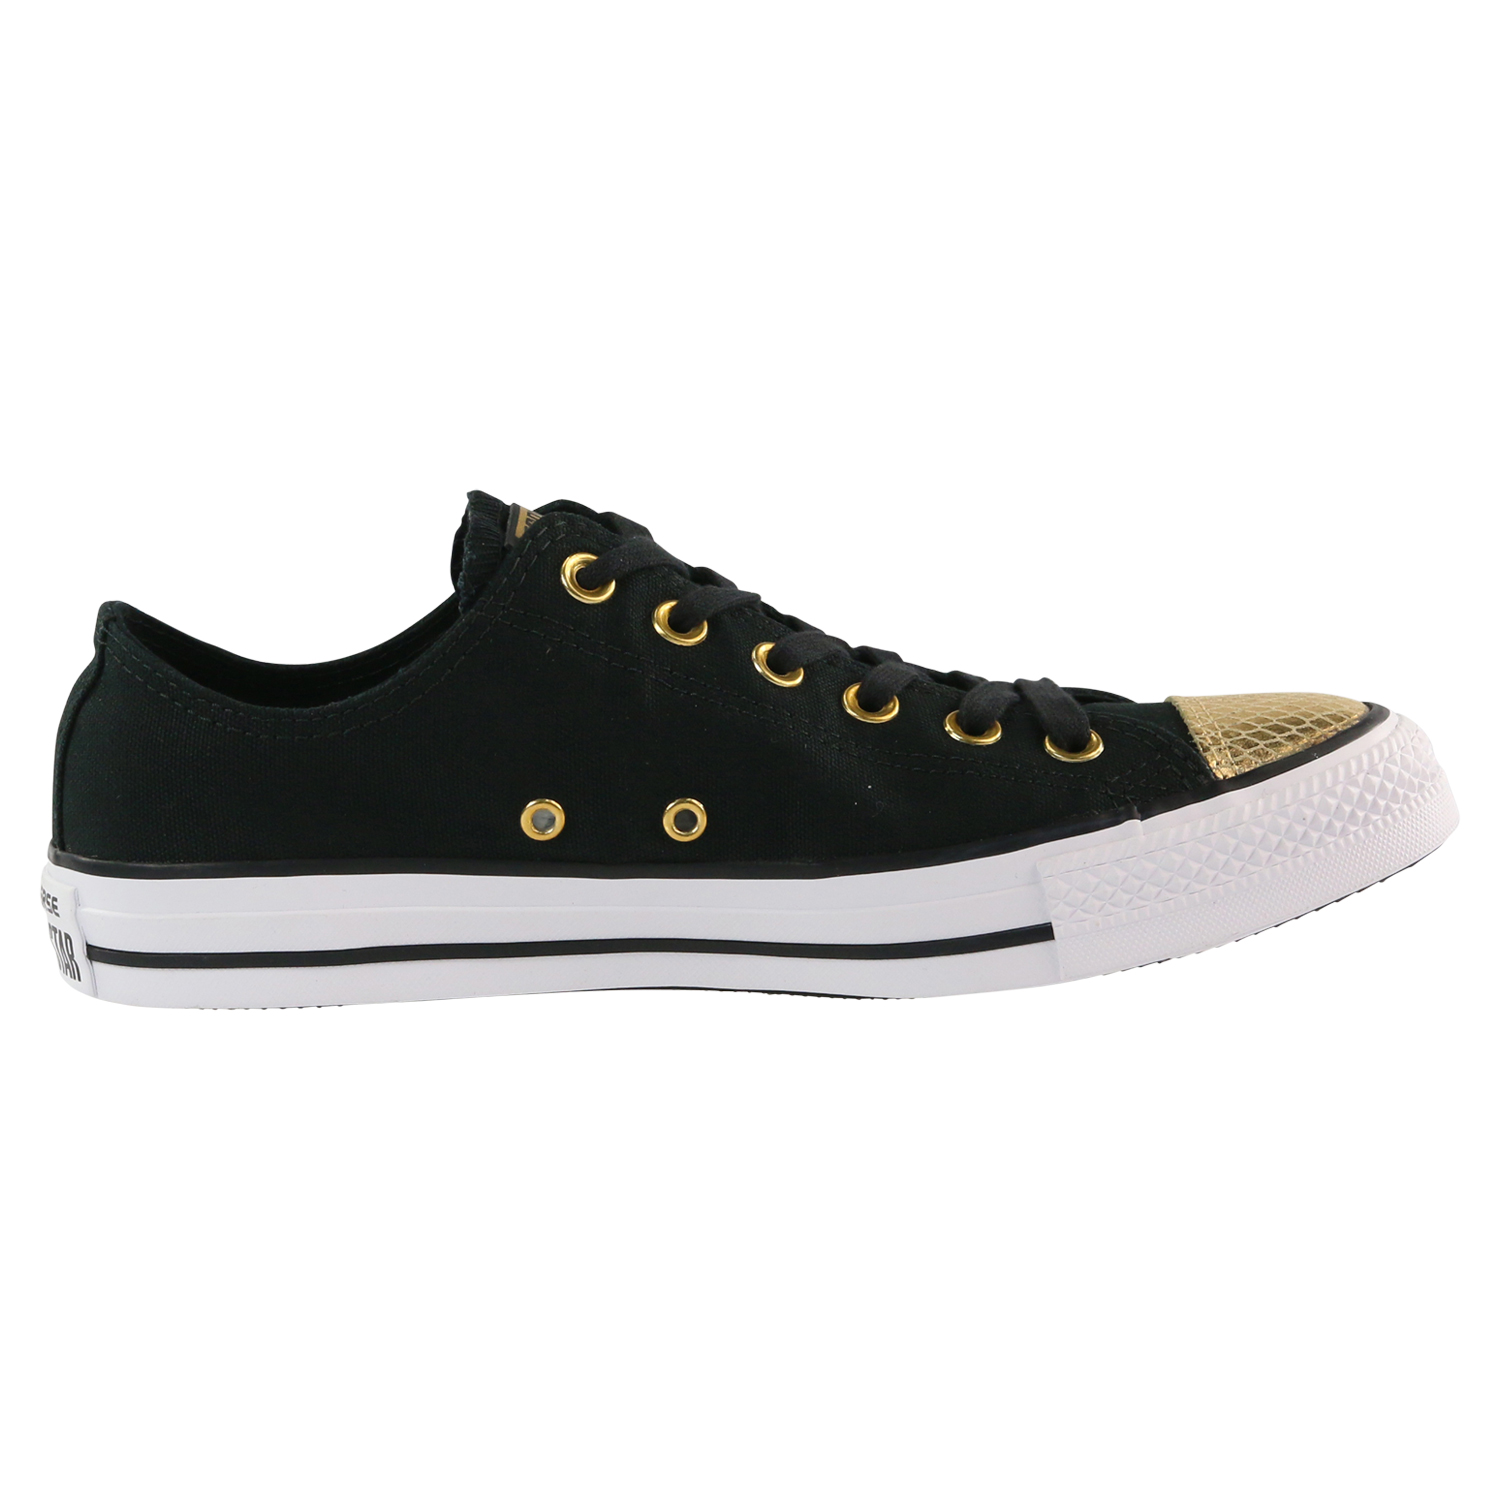 converse chuck taylor all star ox schuhe turnschuhe sneaker damen herren. Black Bedroom Furniture Sets. Home Design Ideas